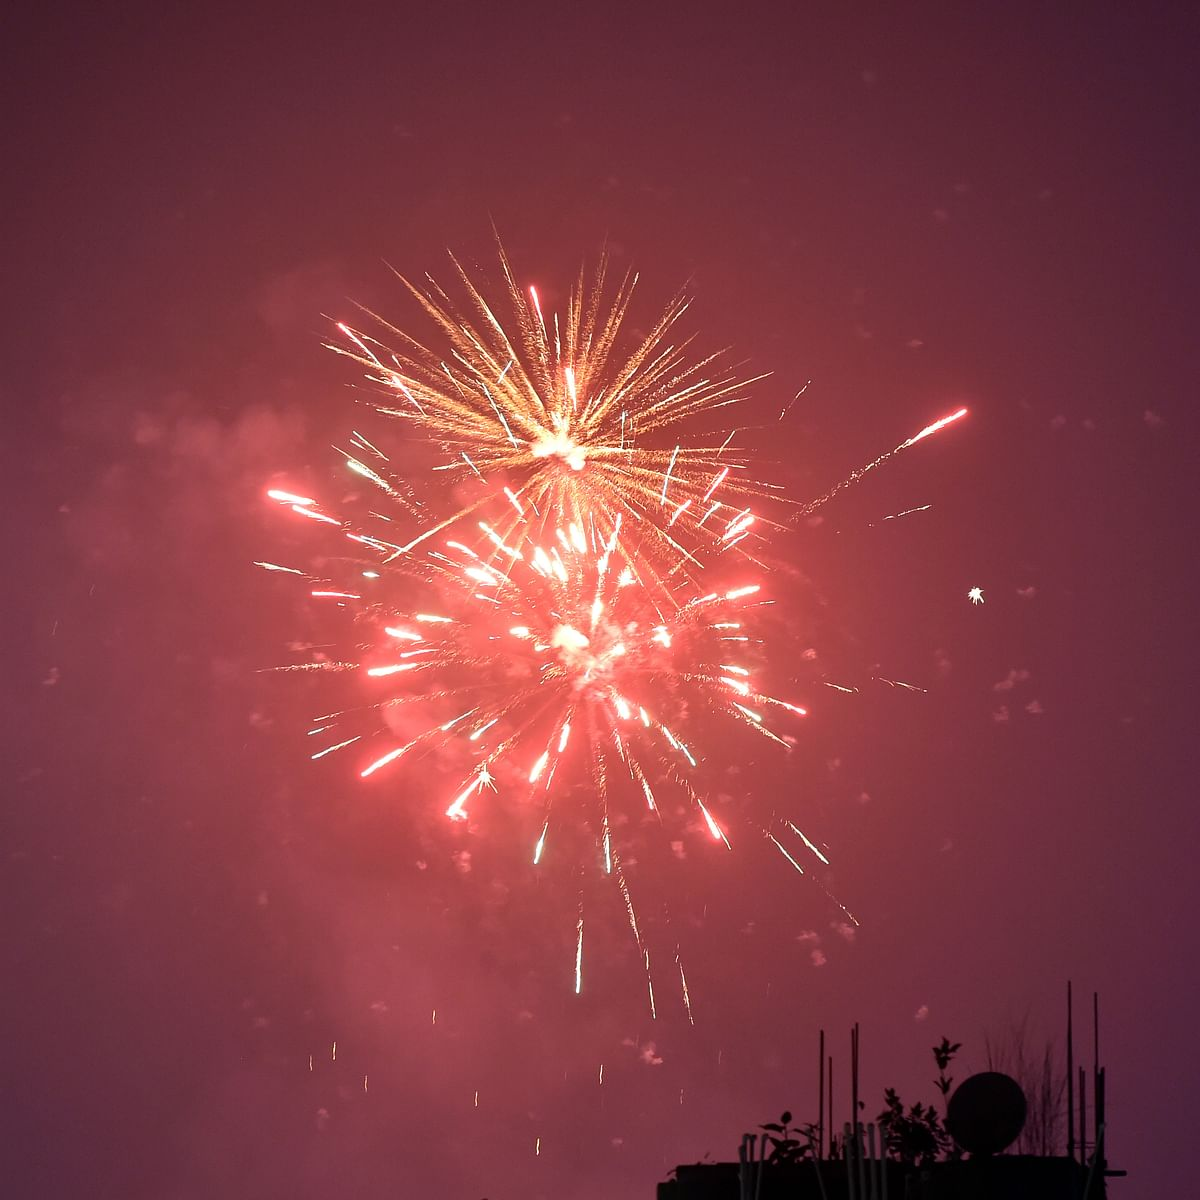 Delhi: People burst firecrackers, violate NGT ban; air quality dips to 'severe' category